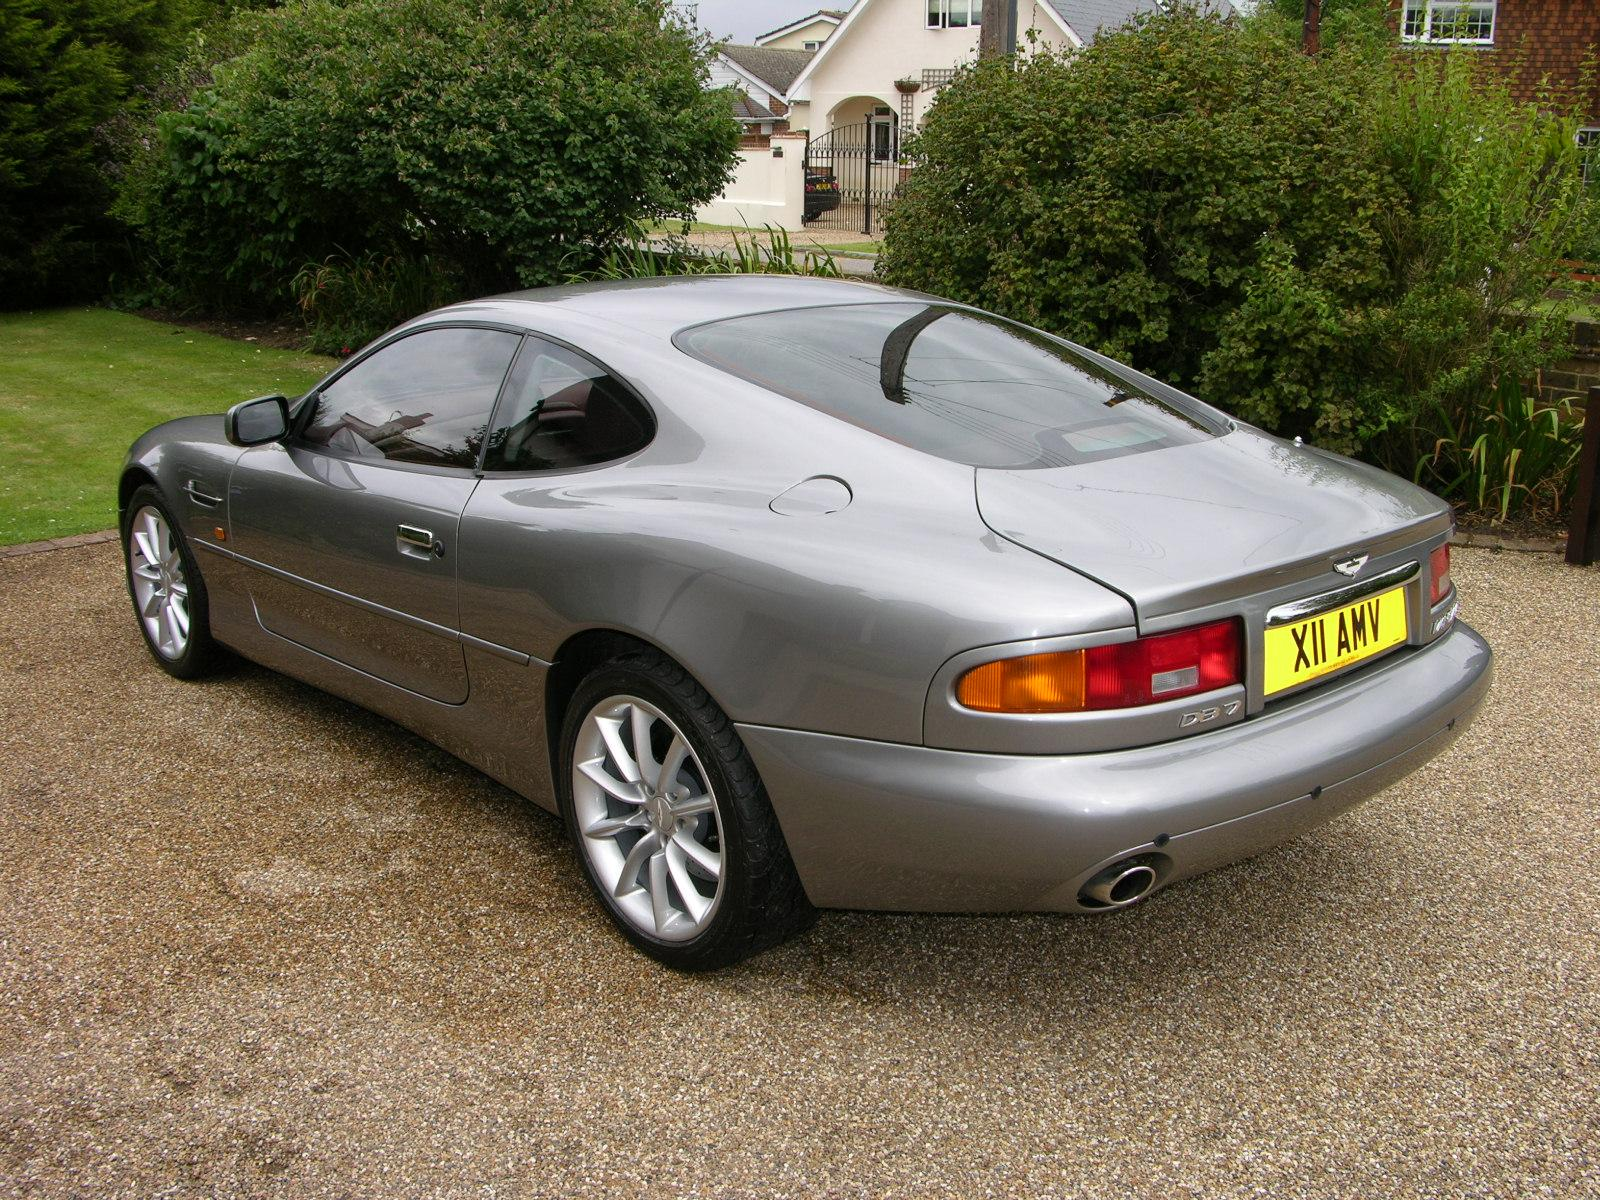 Pictures of aston martin db7 #3